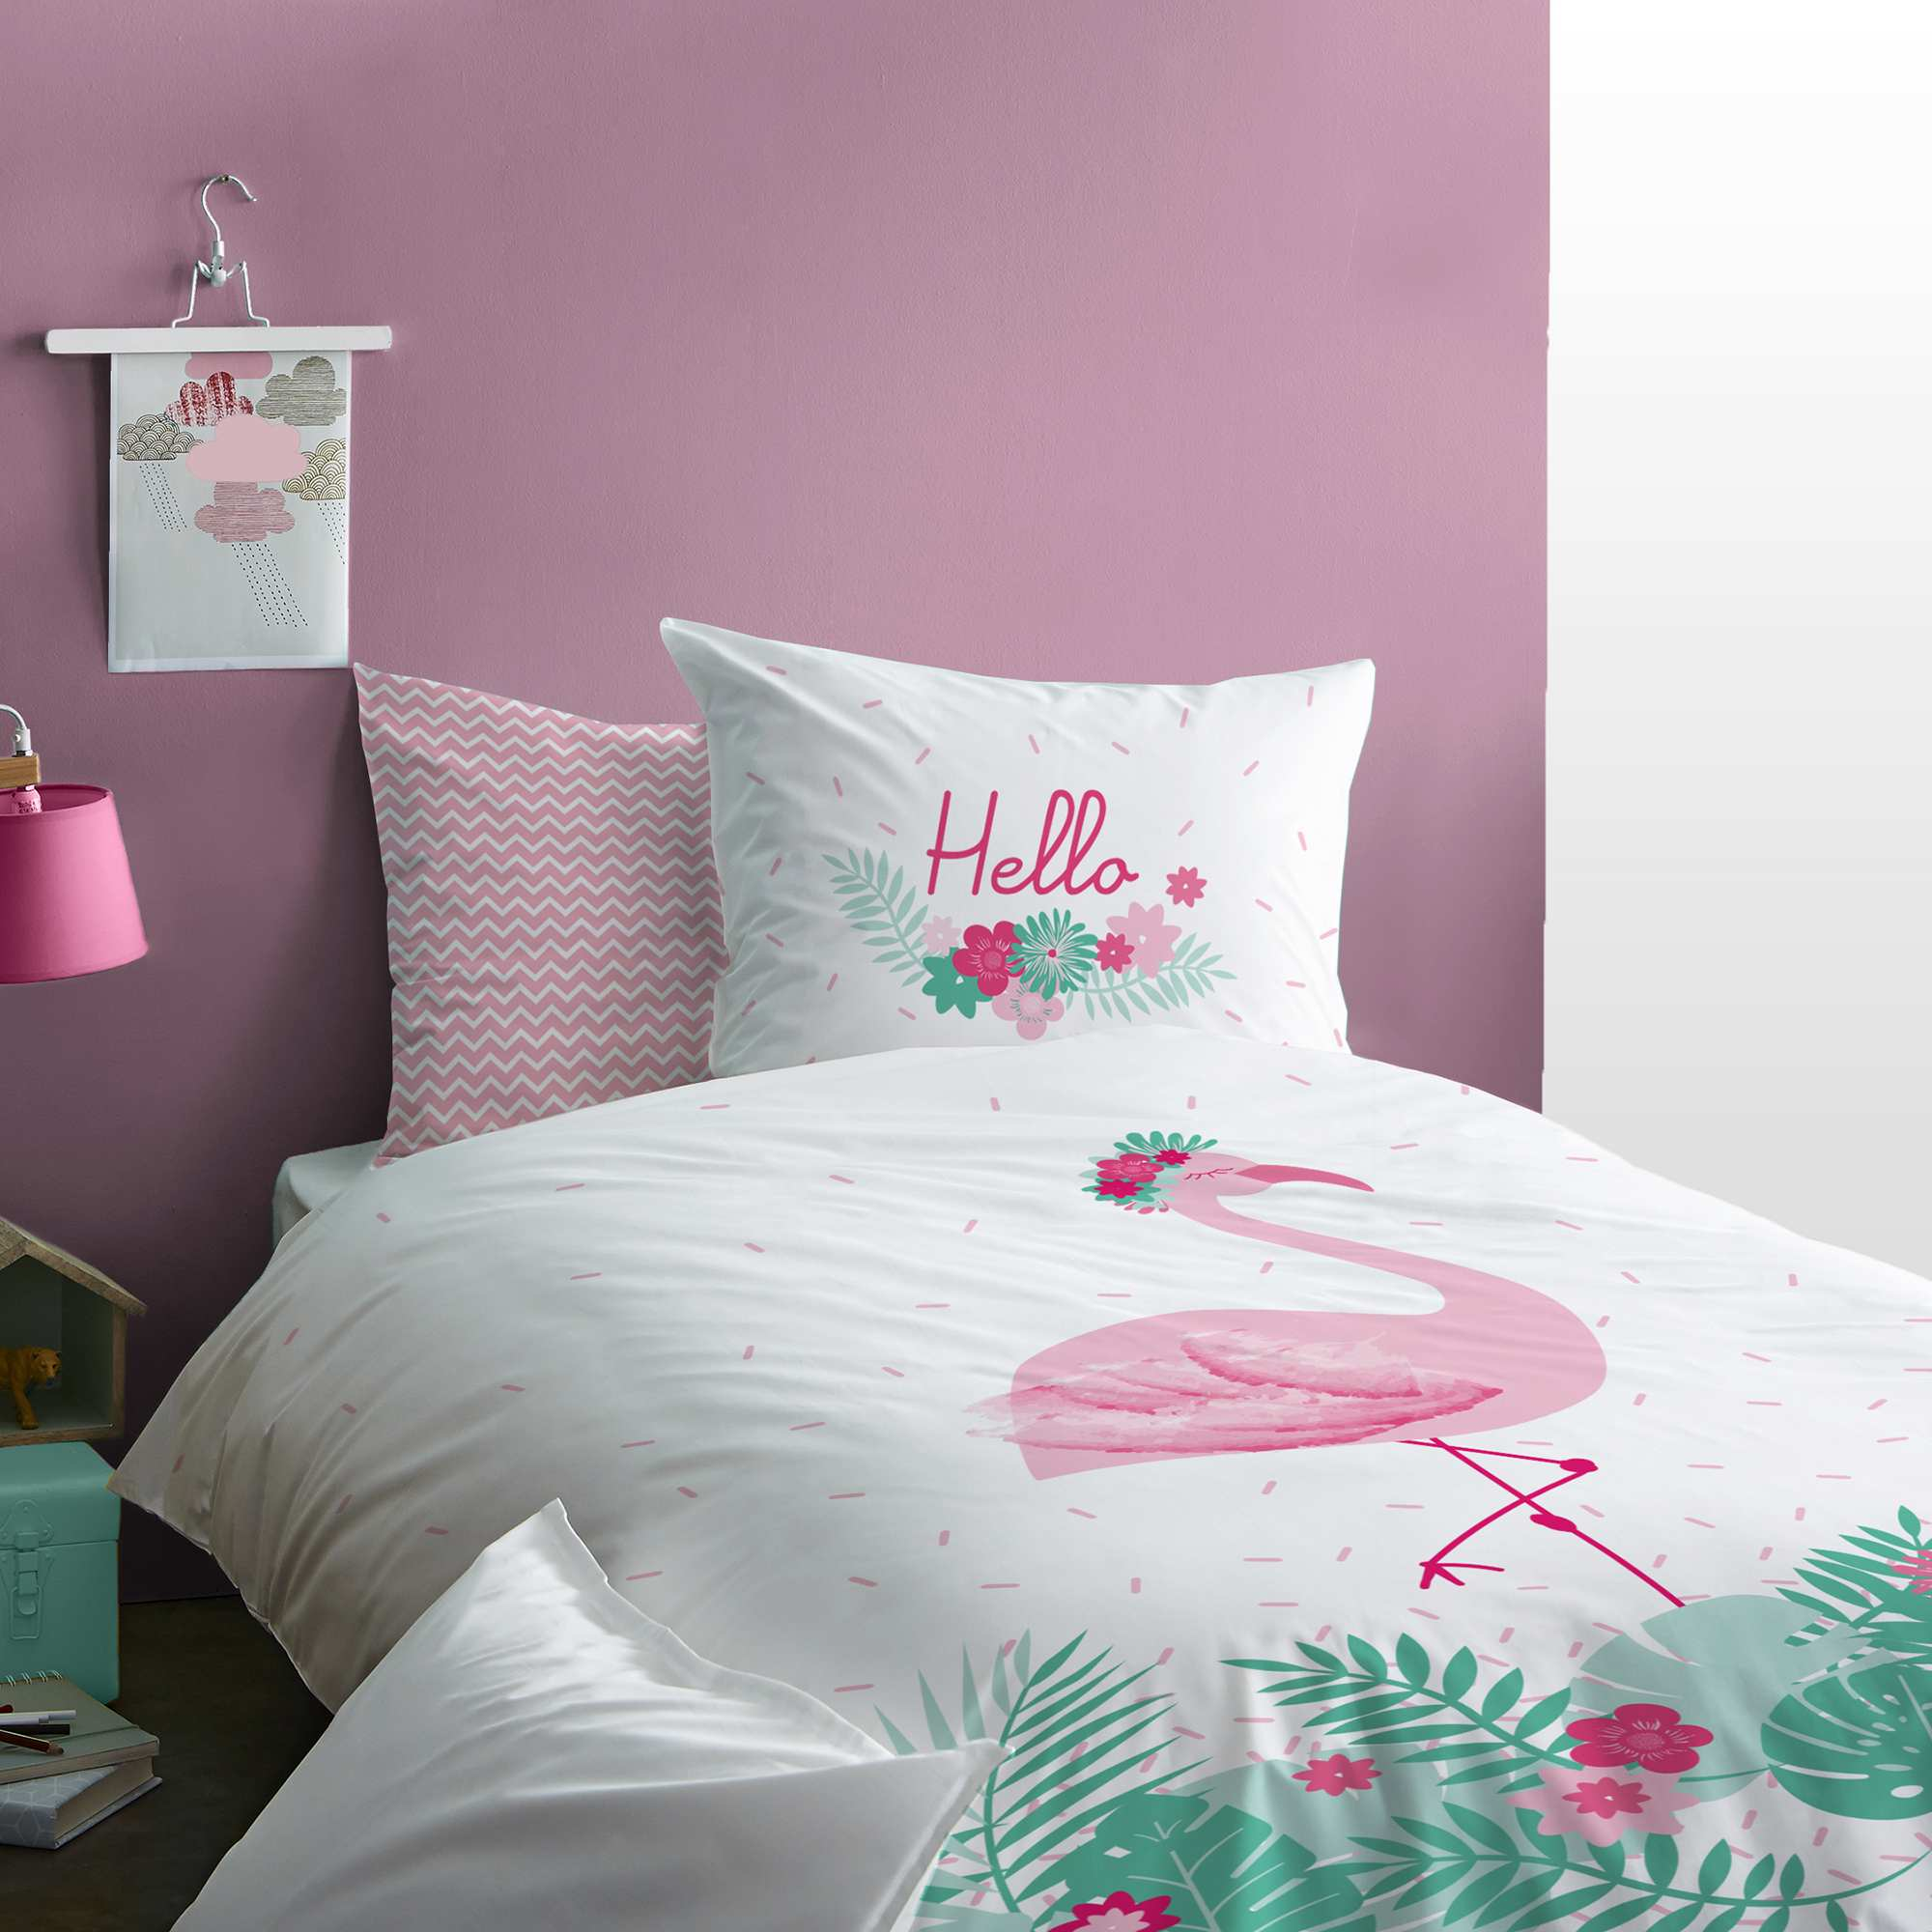 parure de lit r versible 39 flamant rose 39 linge de lit blanc kiabi 27 00. Black Bedroom Furniture Sets. Home Design Ideas